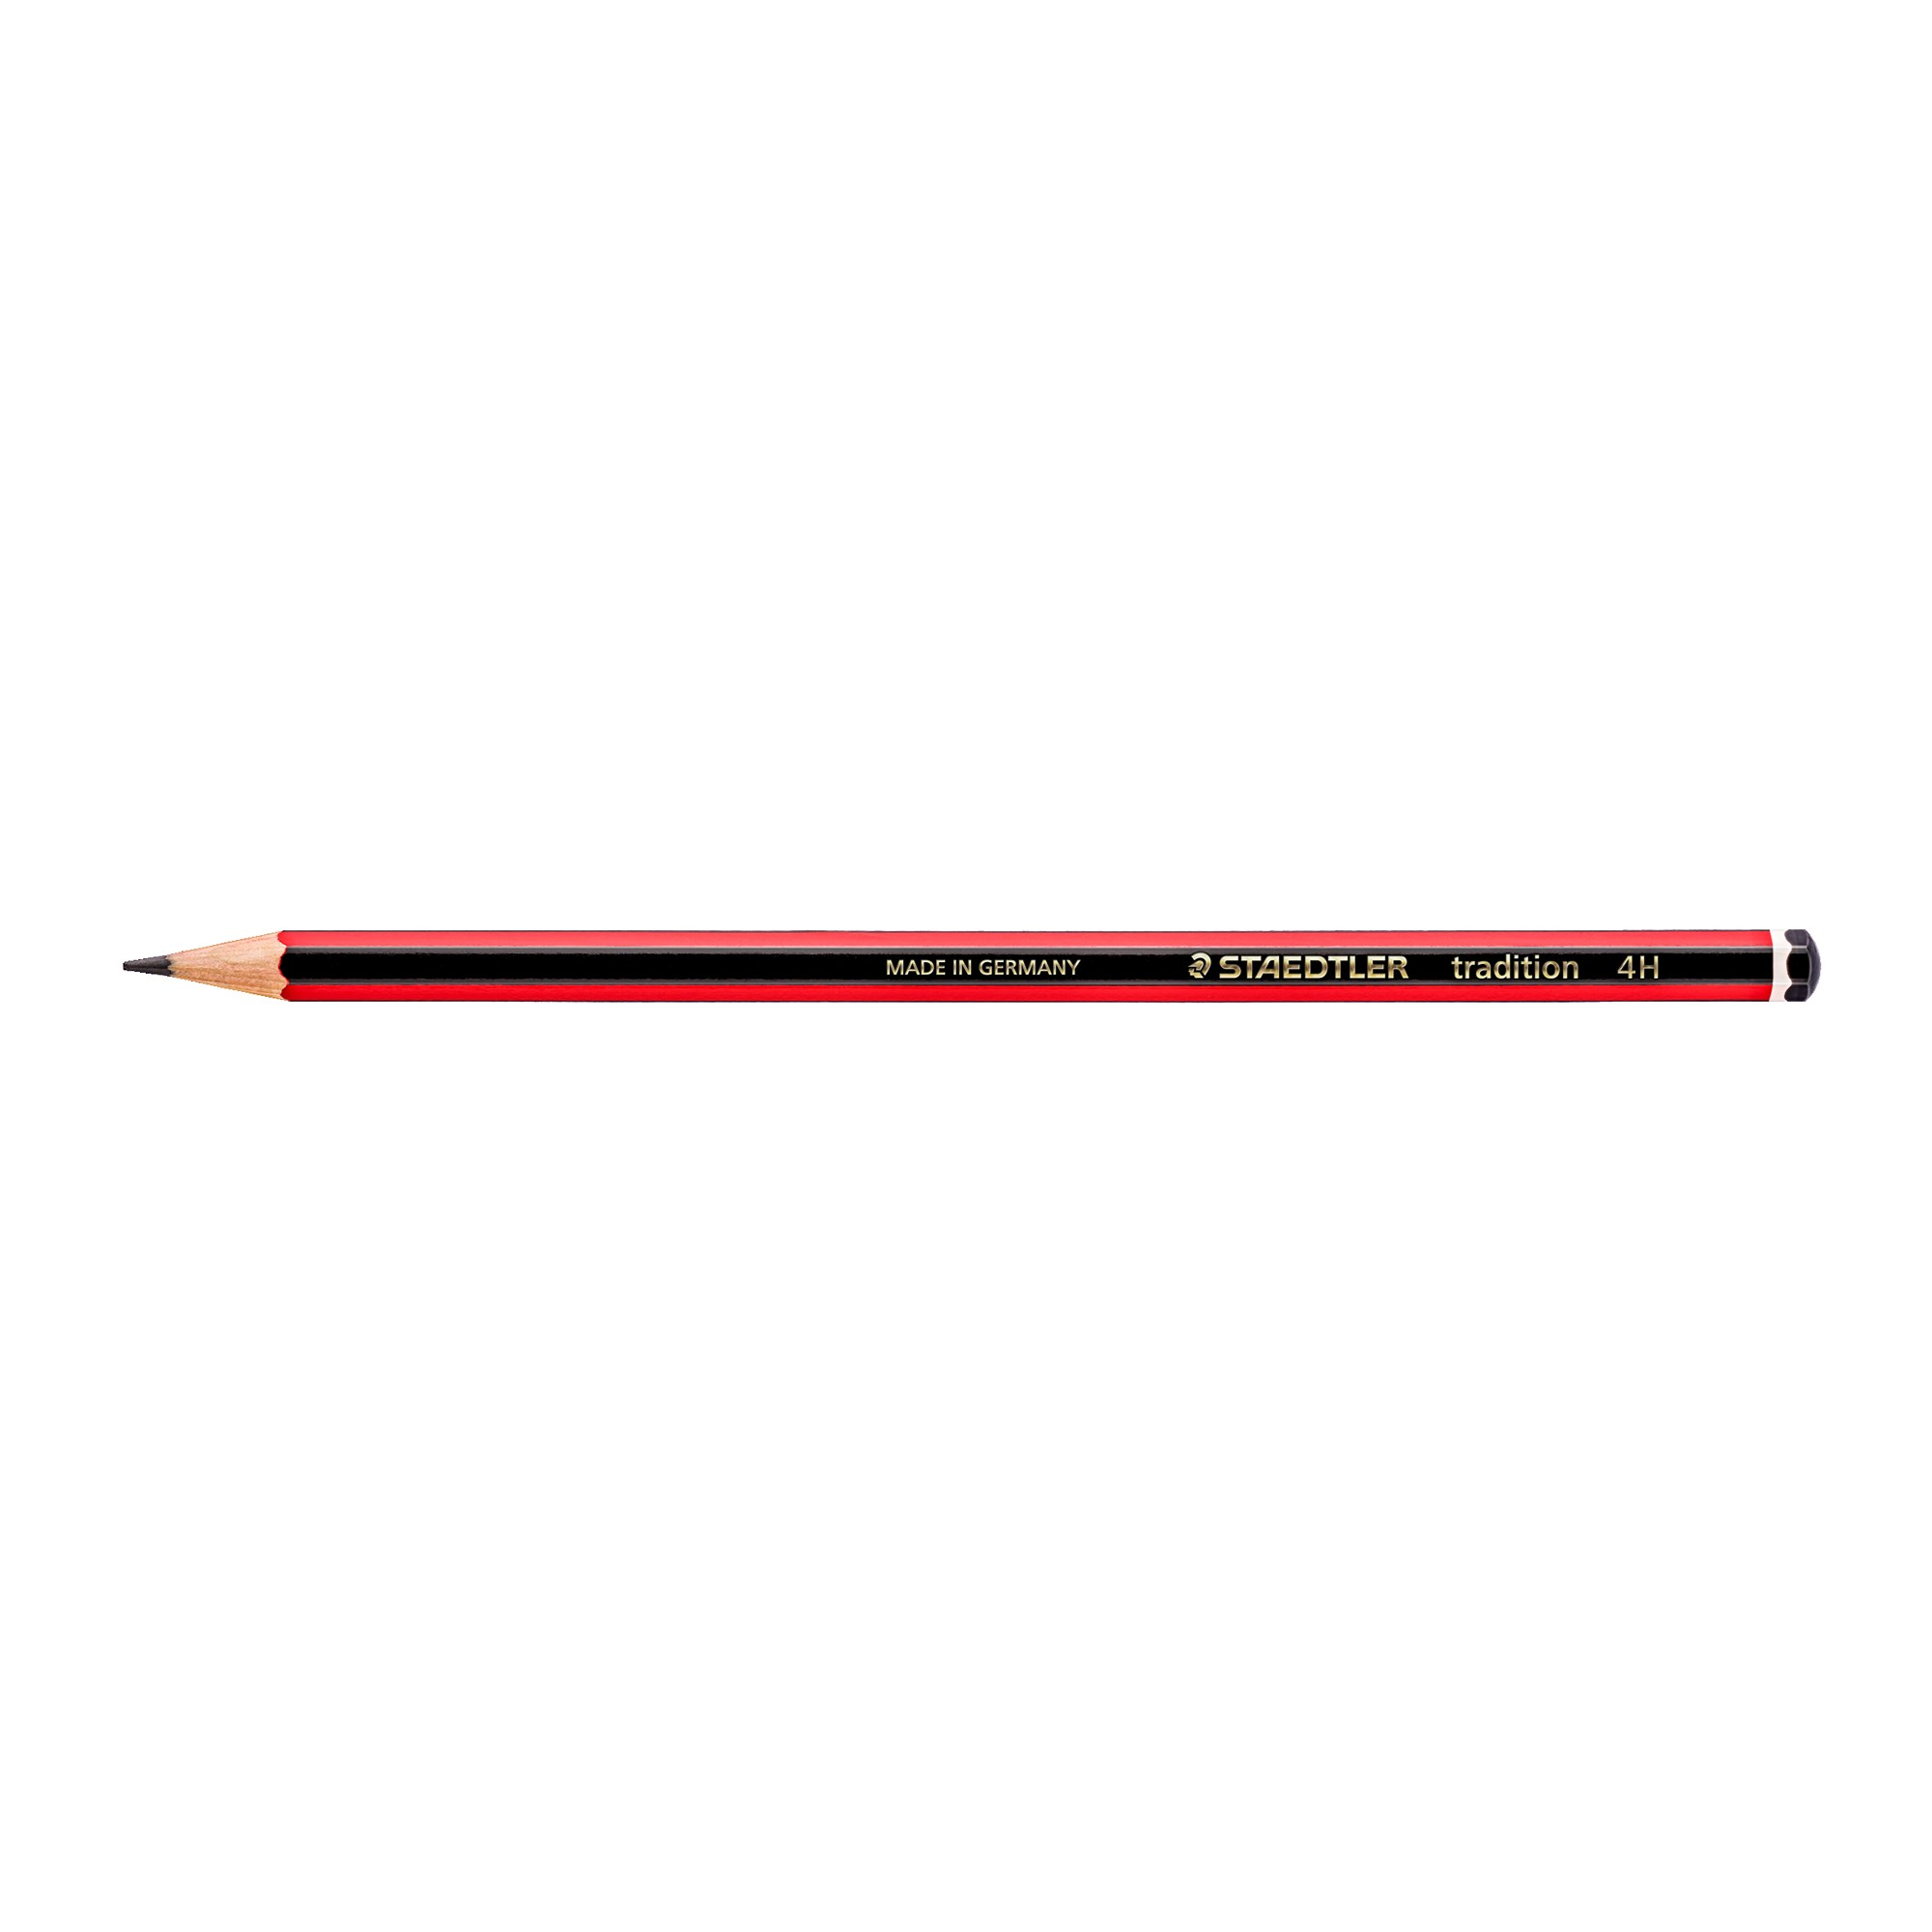 Staedtler Tradition 4H - Pack of 72